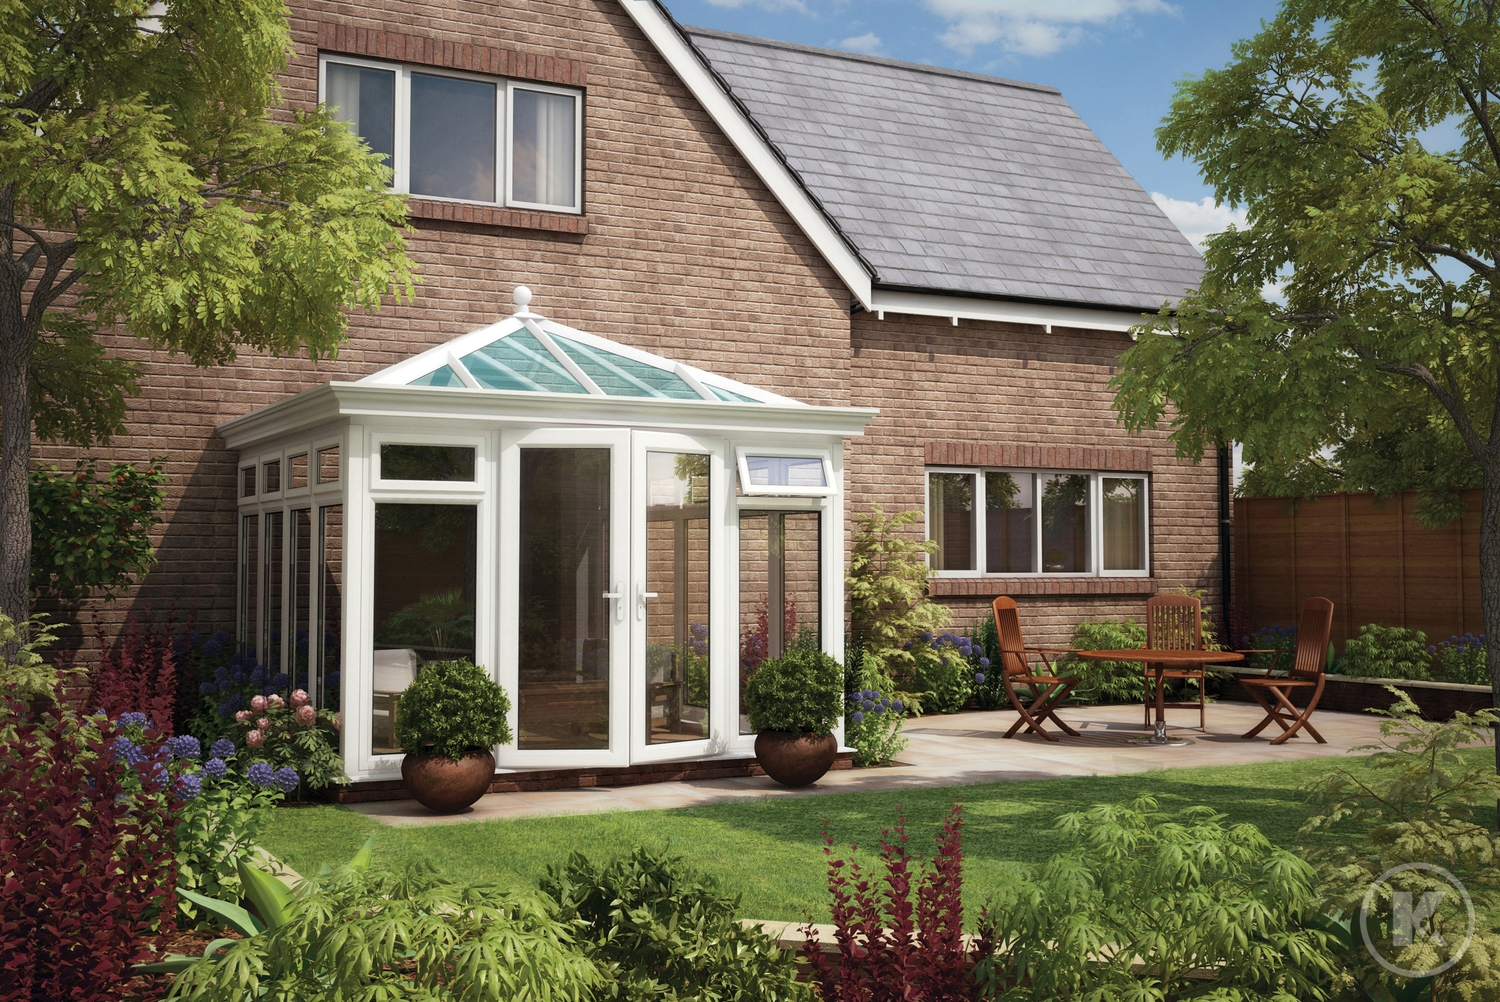 Mike Sherman Orangery Specialist (Orangeries Cambridgeshire)